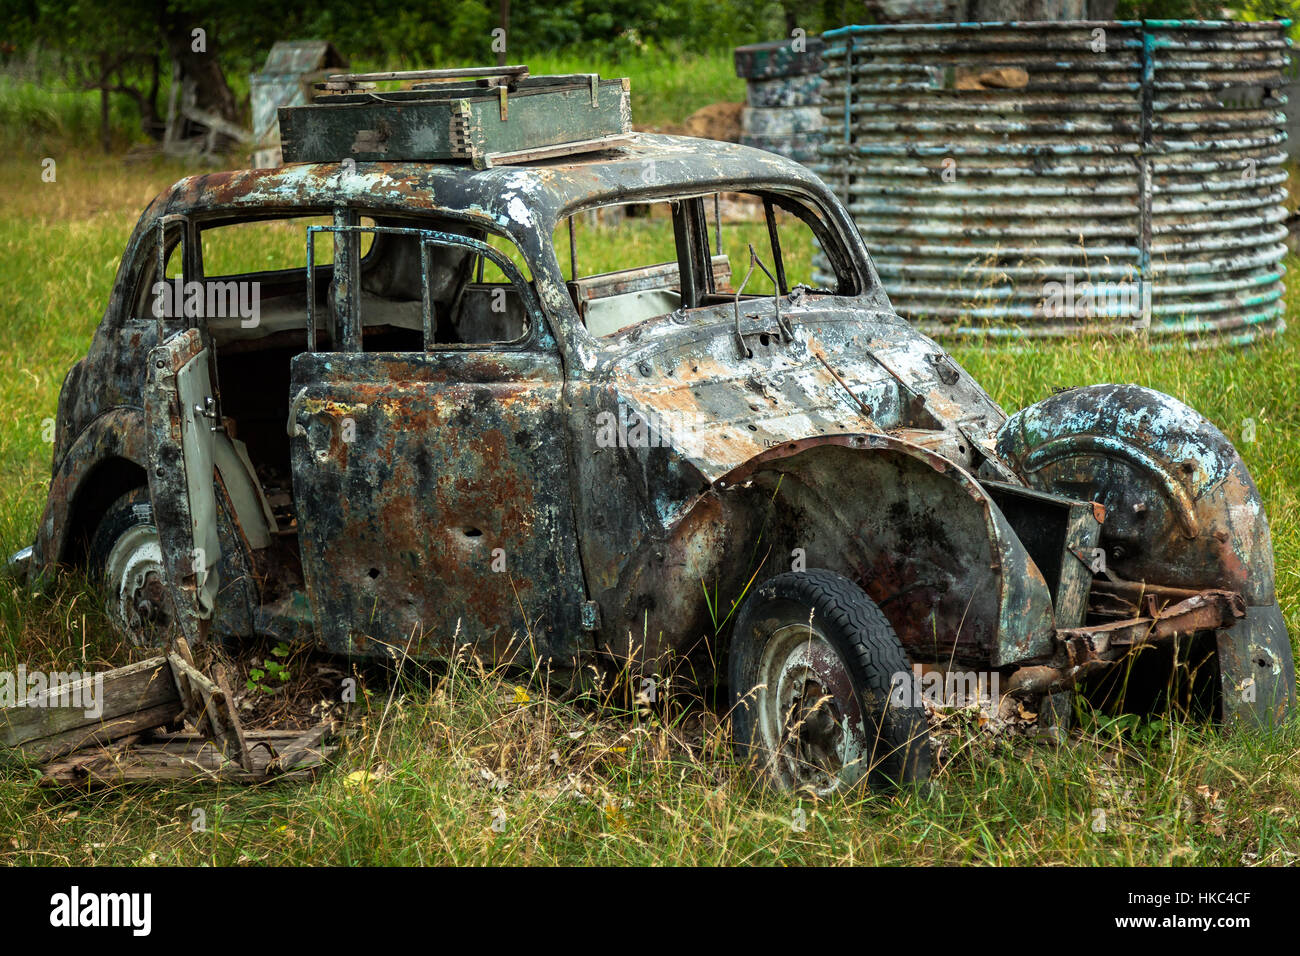 Old crashed cars. Old rusty and crashed military cars left in the ...